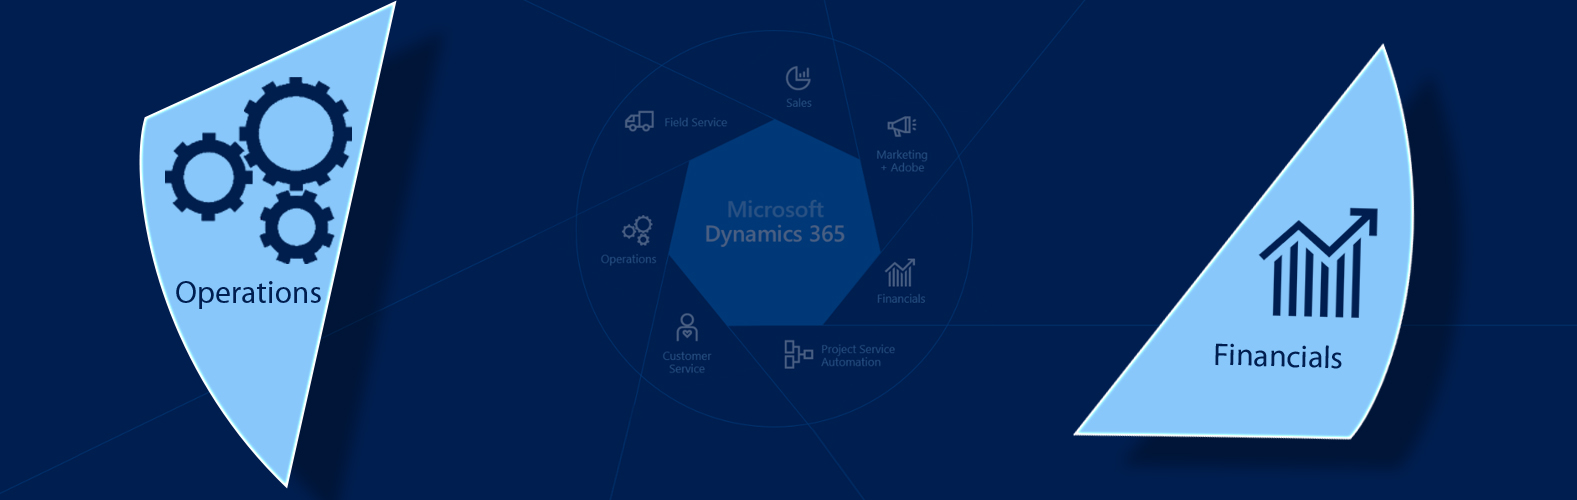 Financials ou Operations, quel ERP Dynamics 365 choisir ?